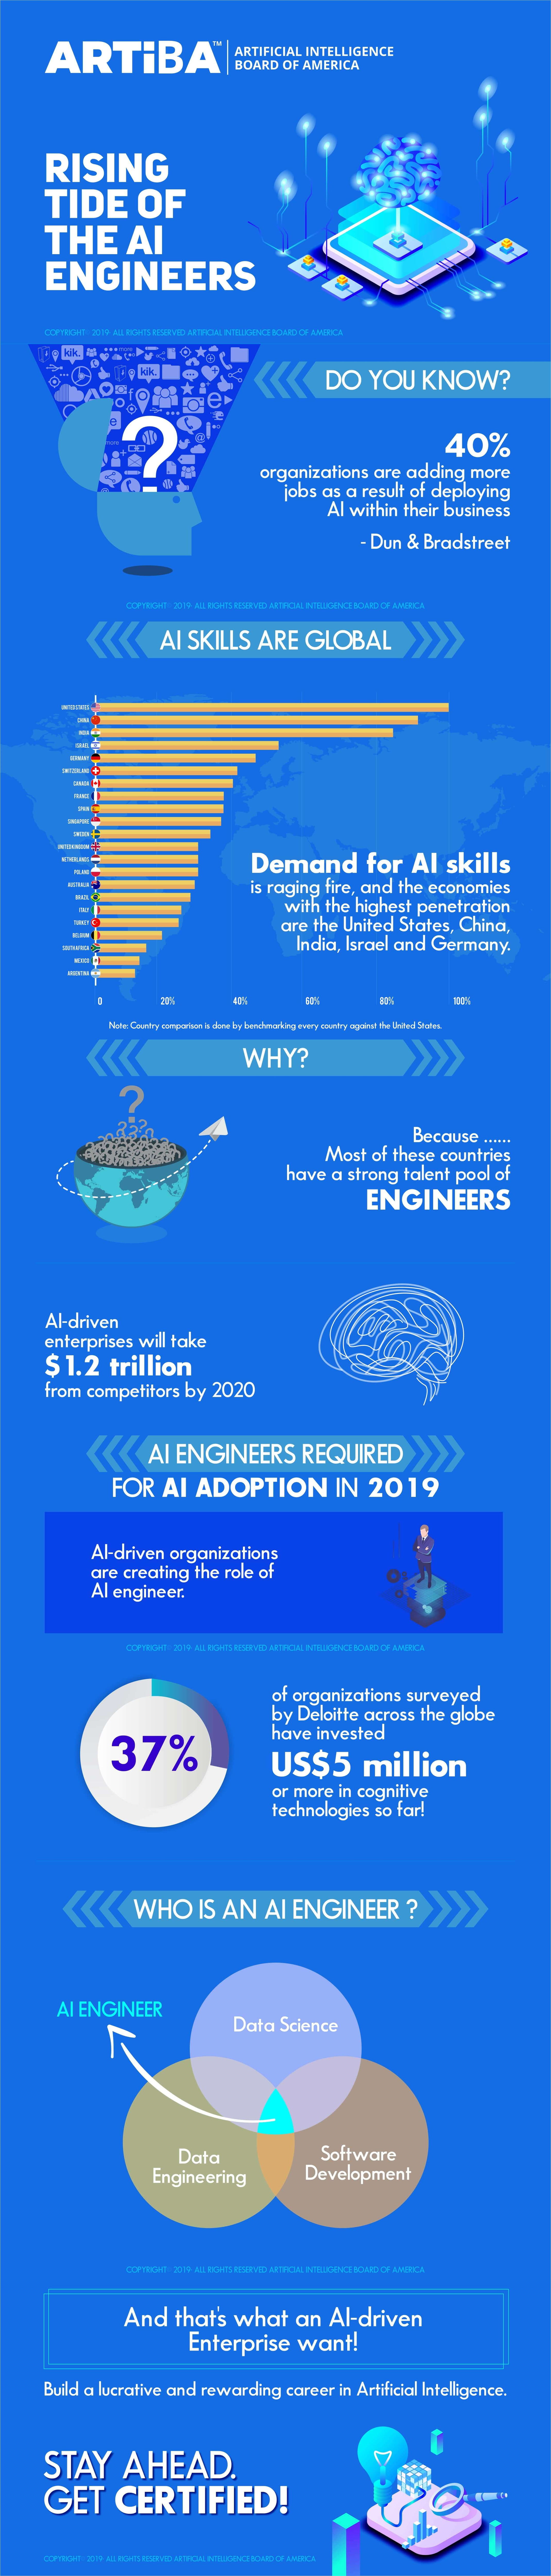 rising-tide-of-the-ai-engineers-infographic-plaza